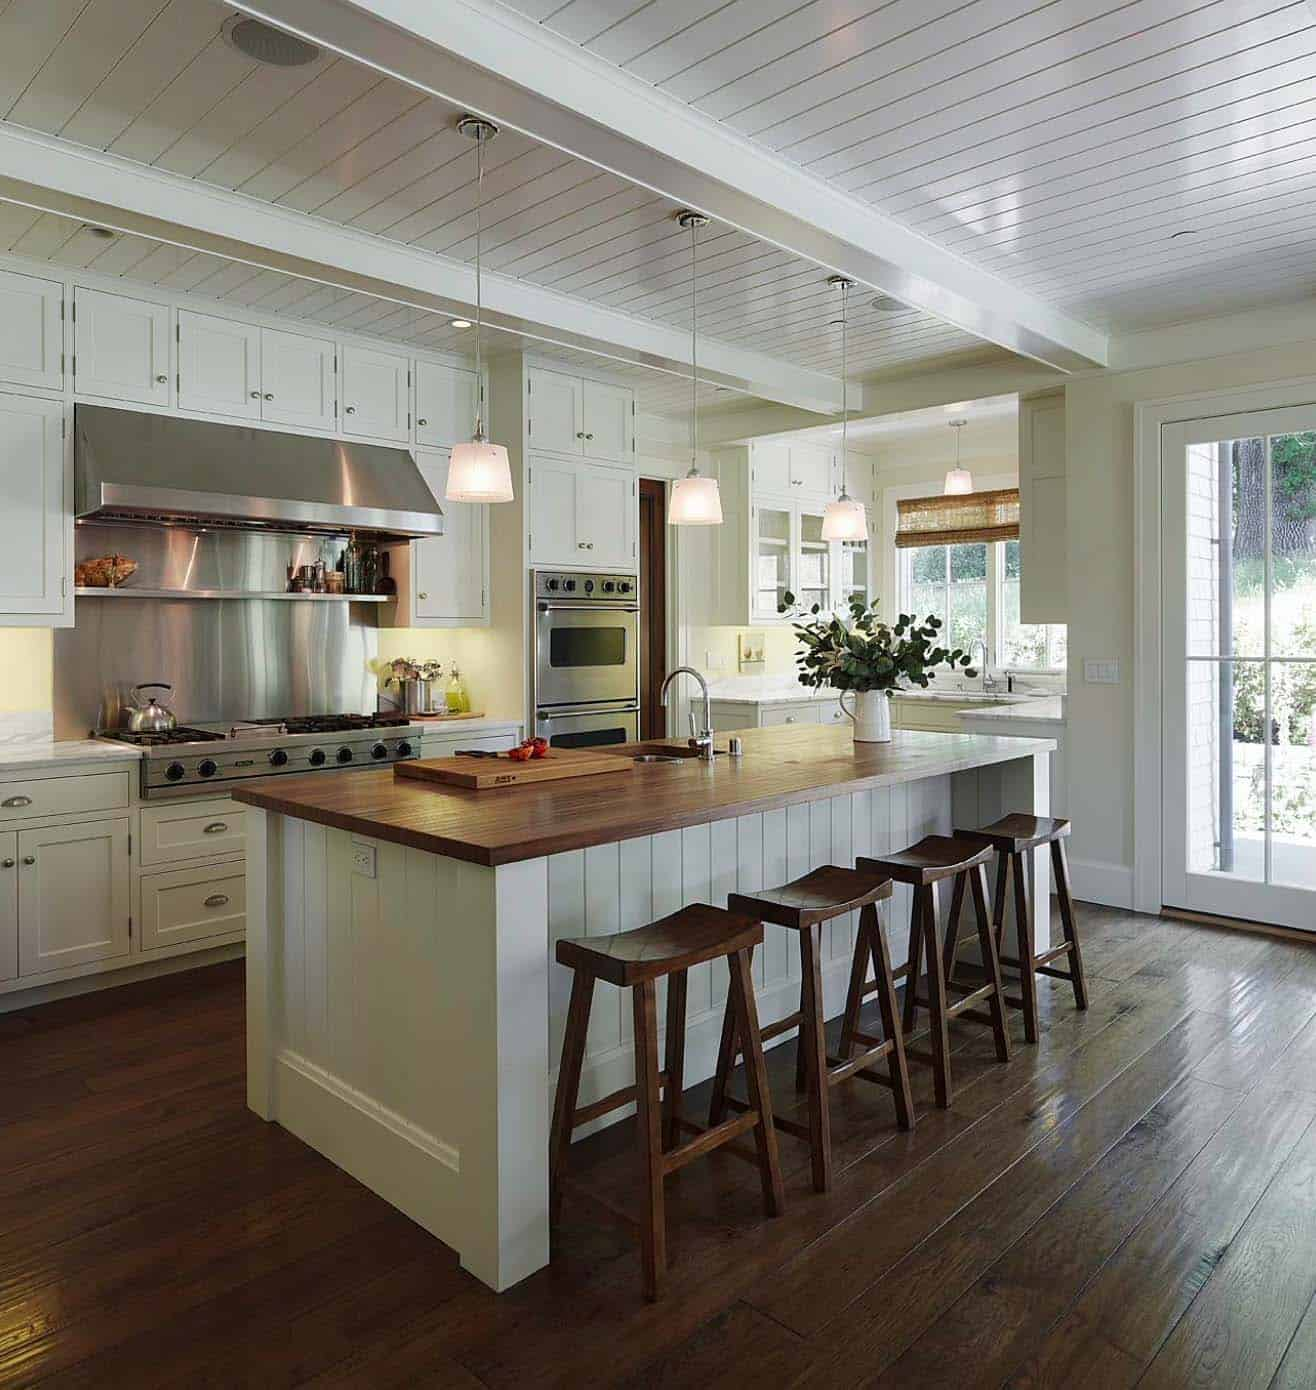 Island Kitchen Design Ideas: 30+ Brilliant Kitchen Island Ideas That Make A Statement